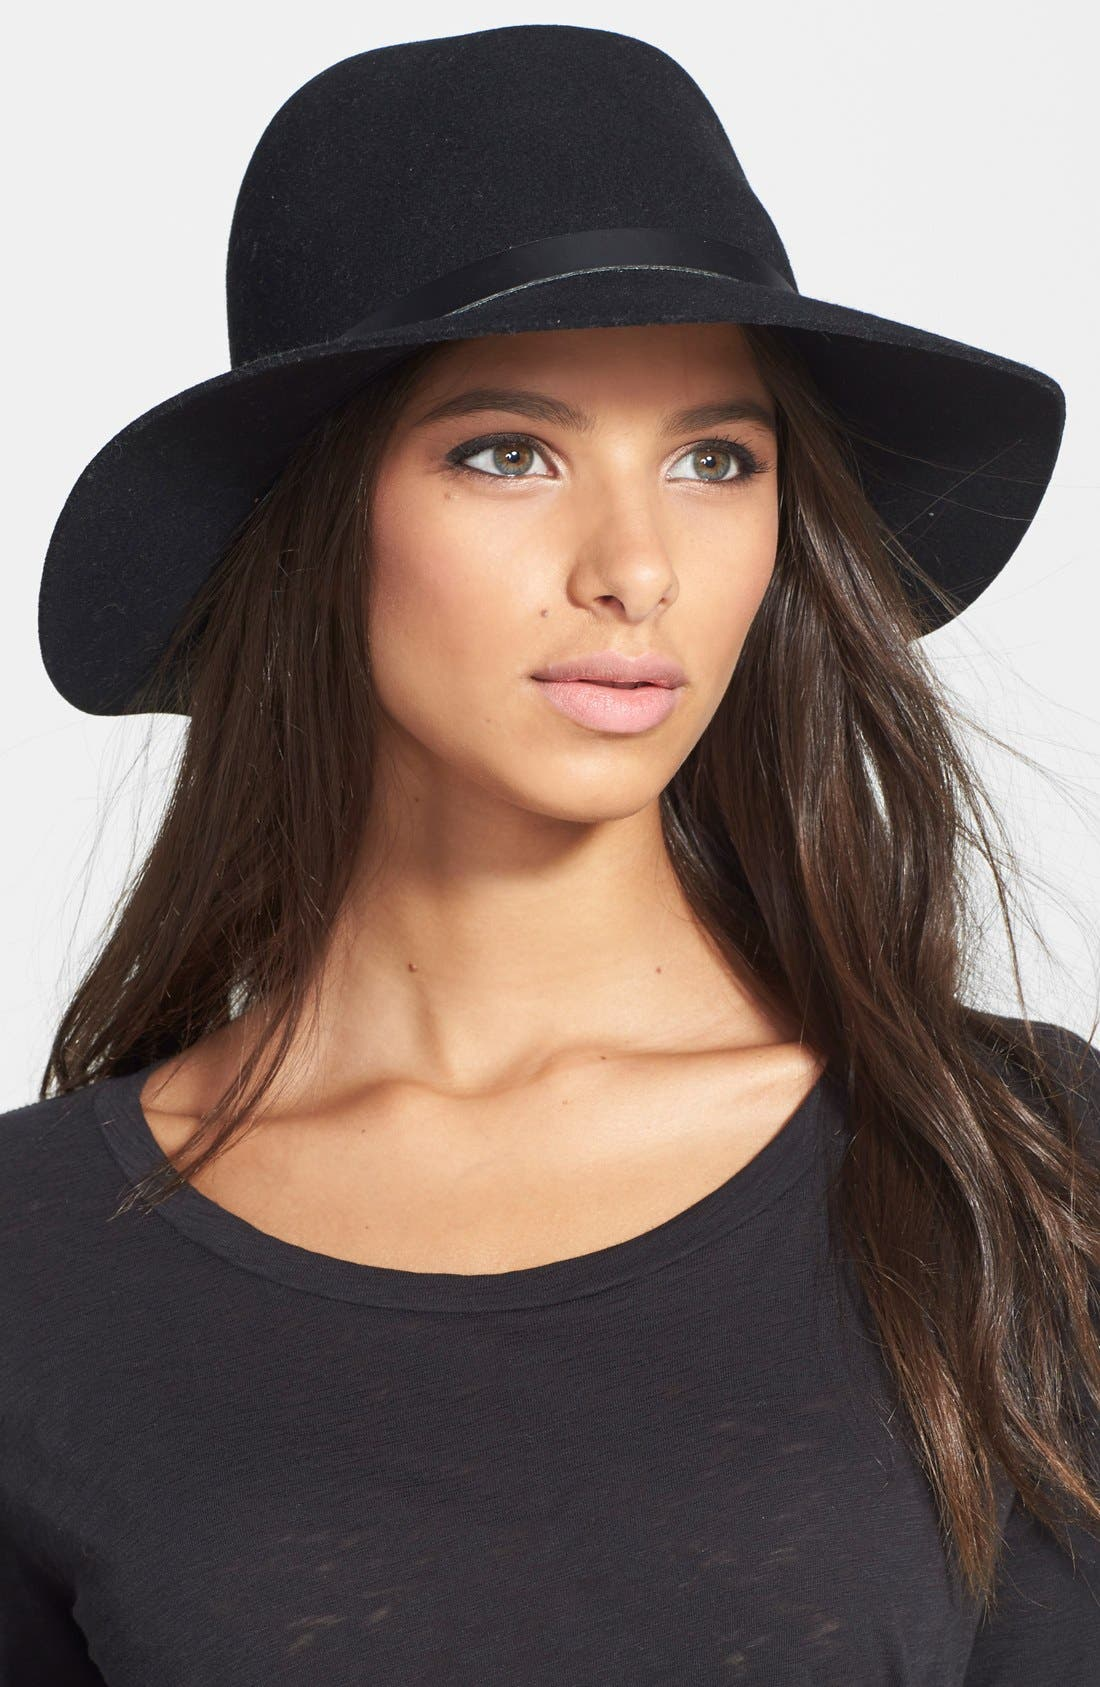 Alternate Image 1 Selected - rag & bone Floppy Brim Felted Wool Fedora